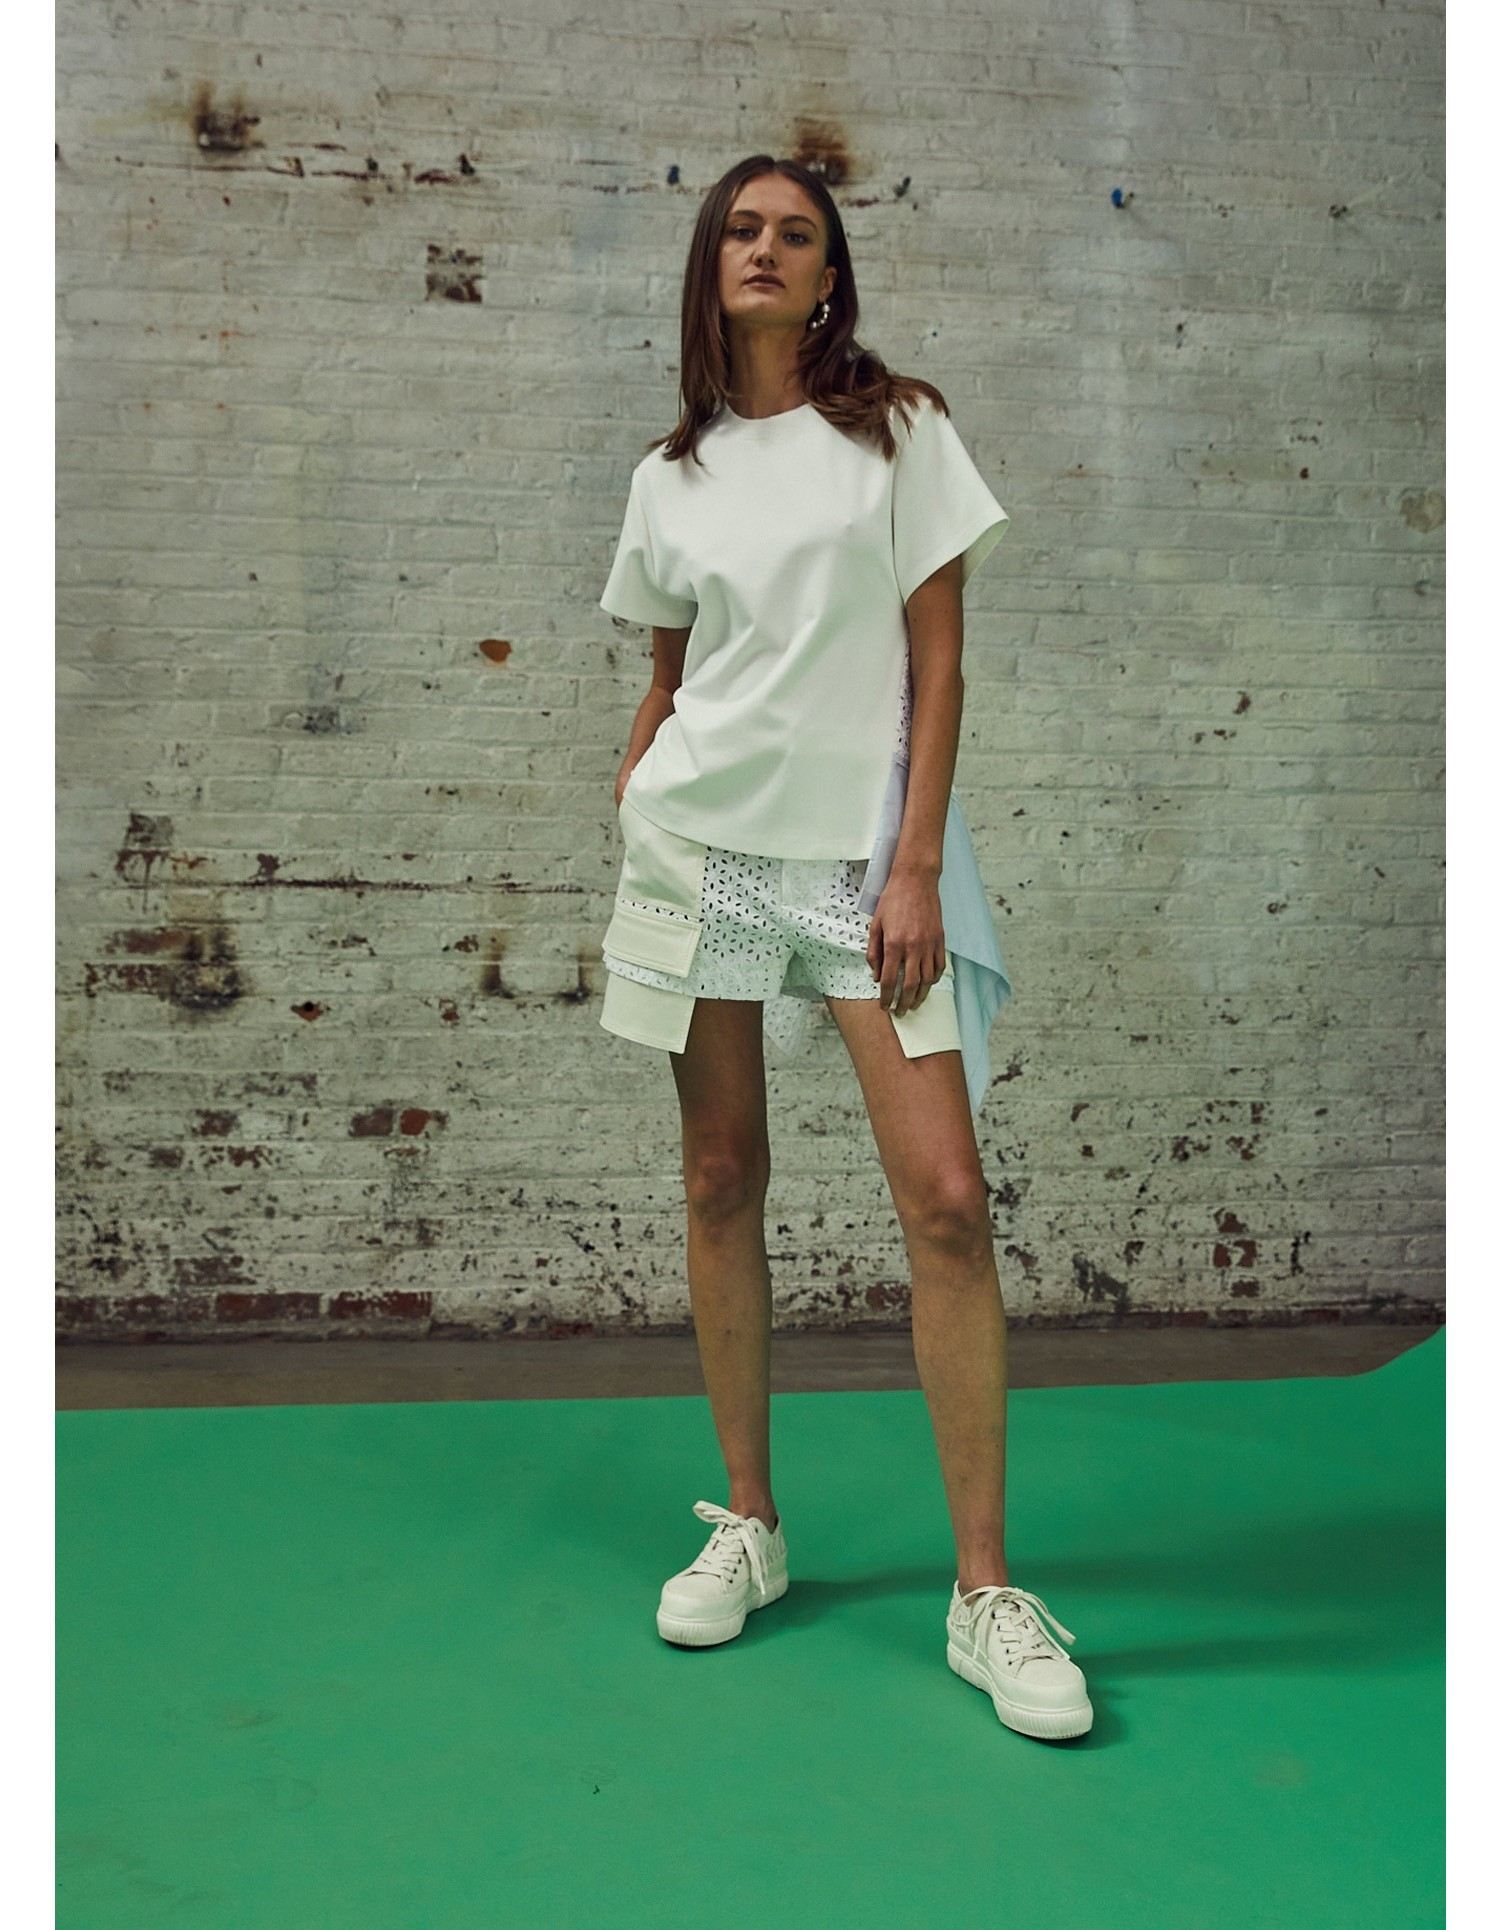 MONSE Eyelet Patched Tee on Model Side View